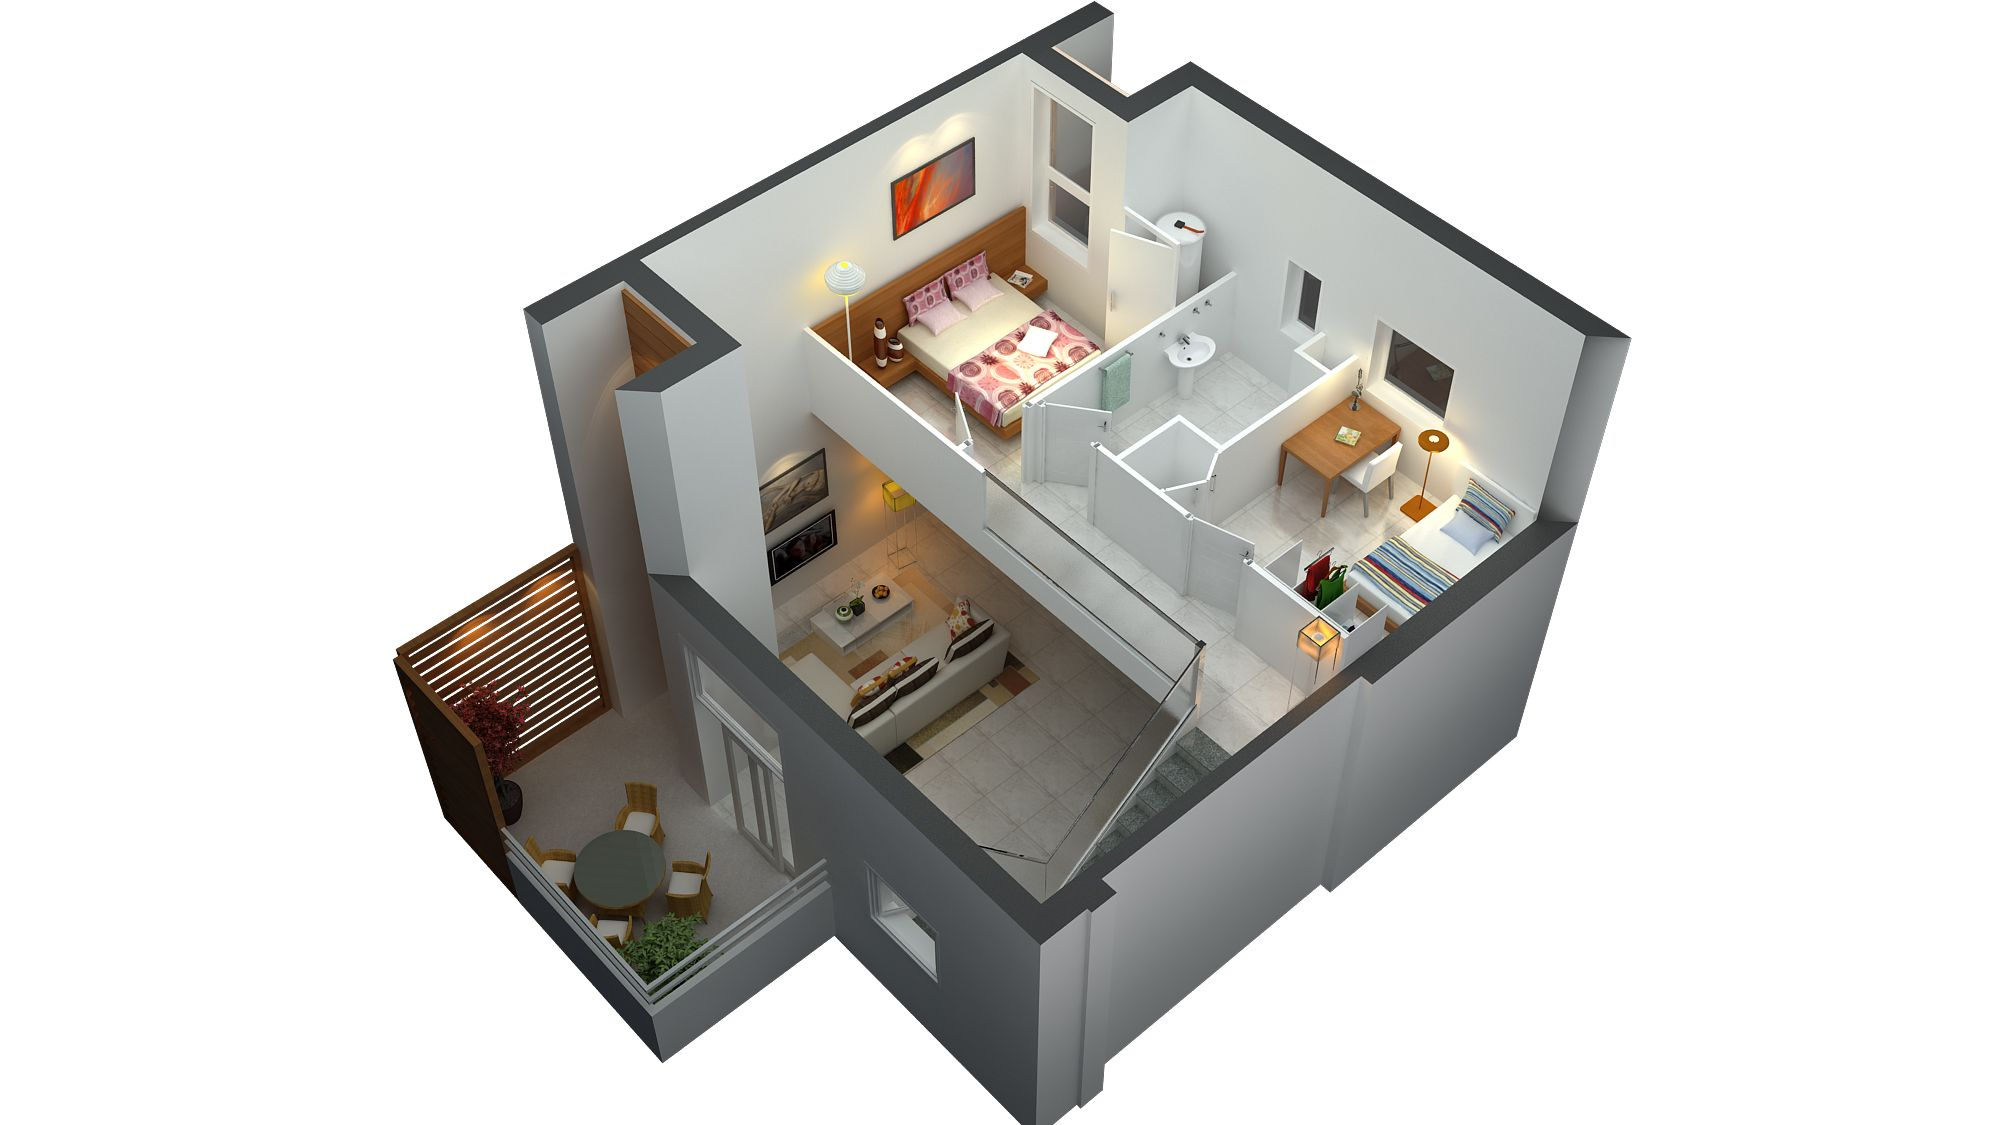 3d floor plan small house plans pinterest 3d for 3d home floor plan design